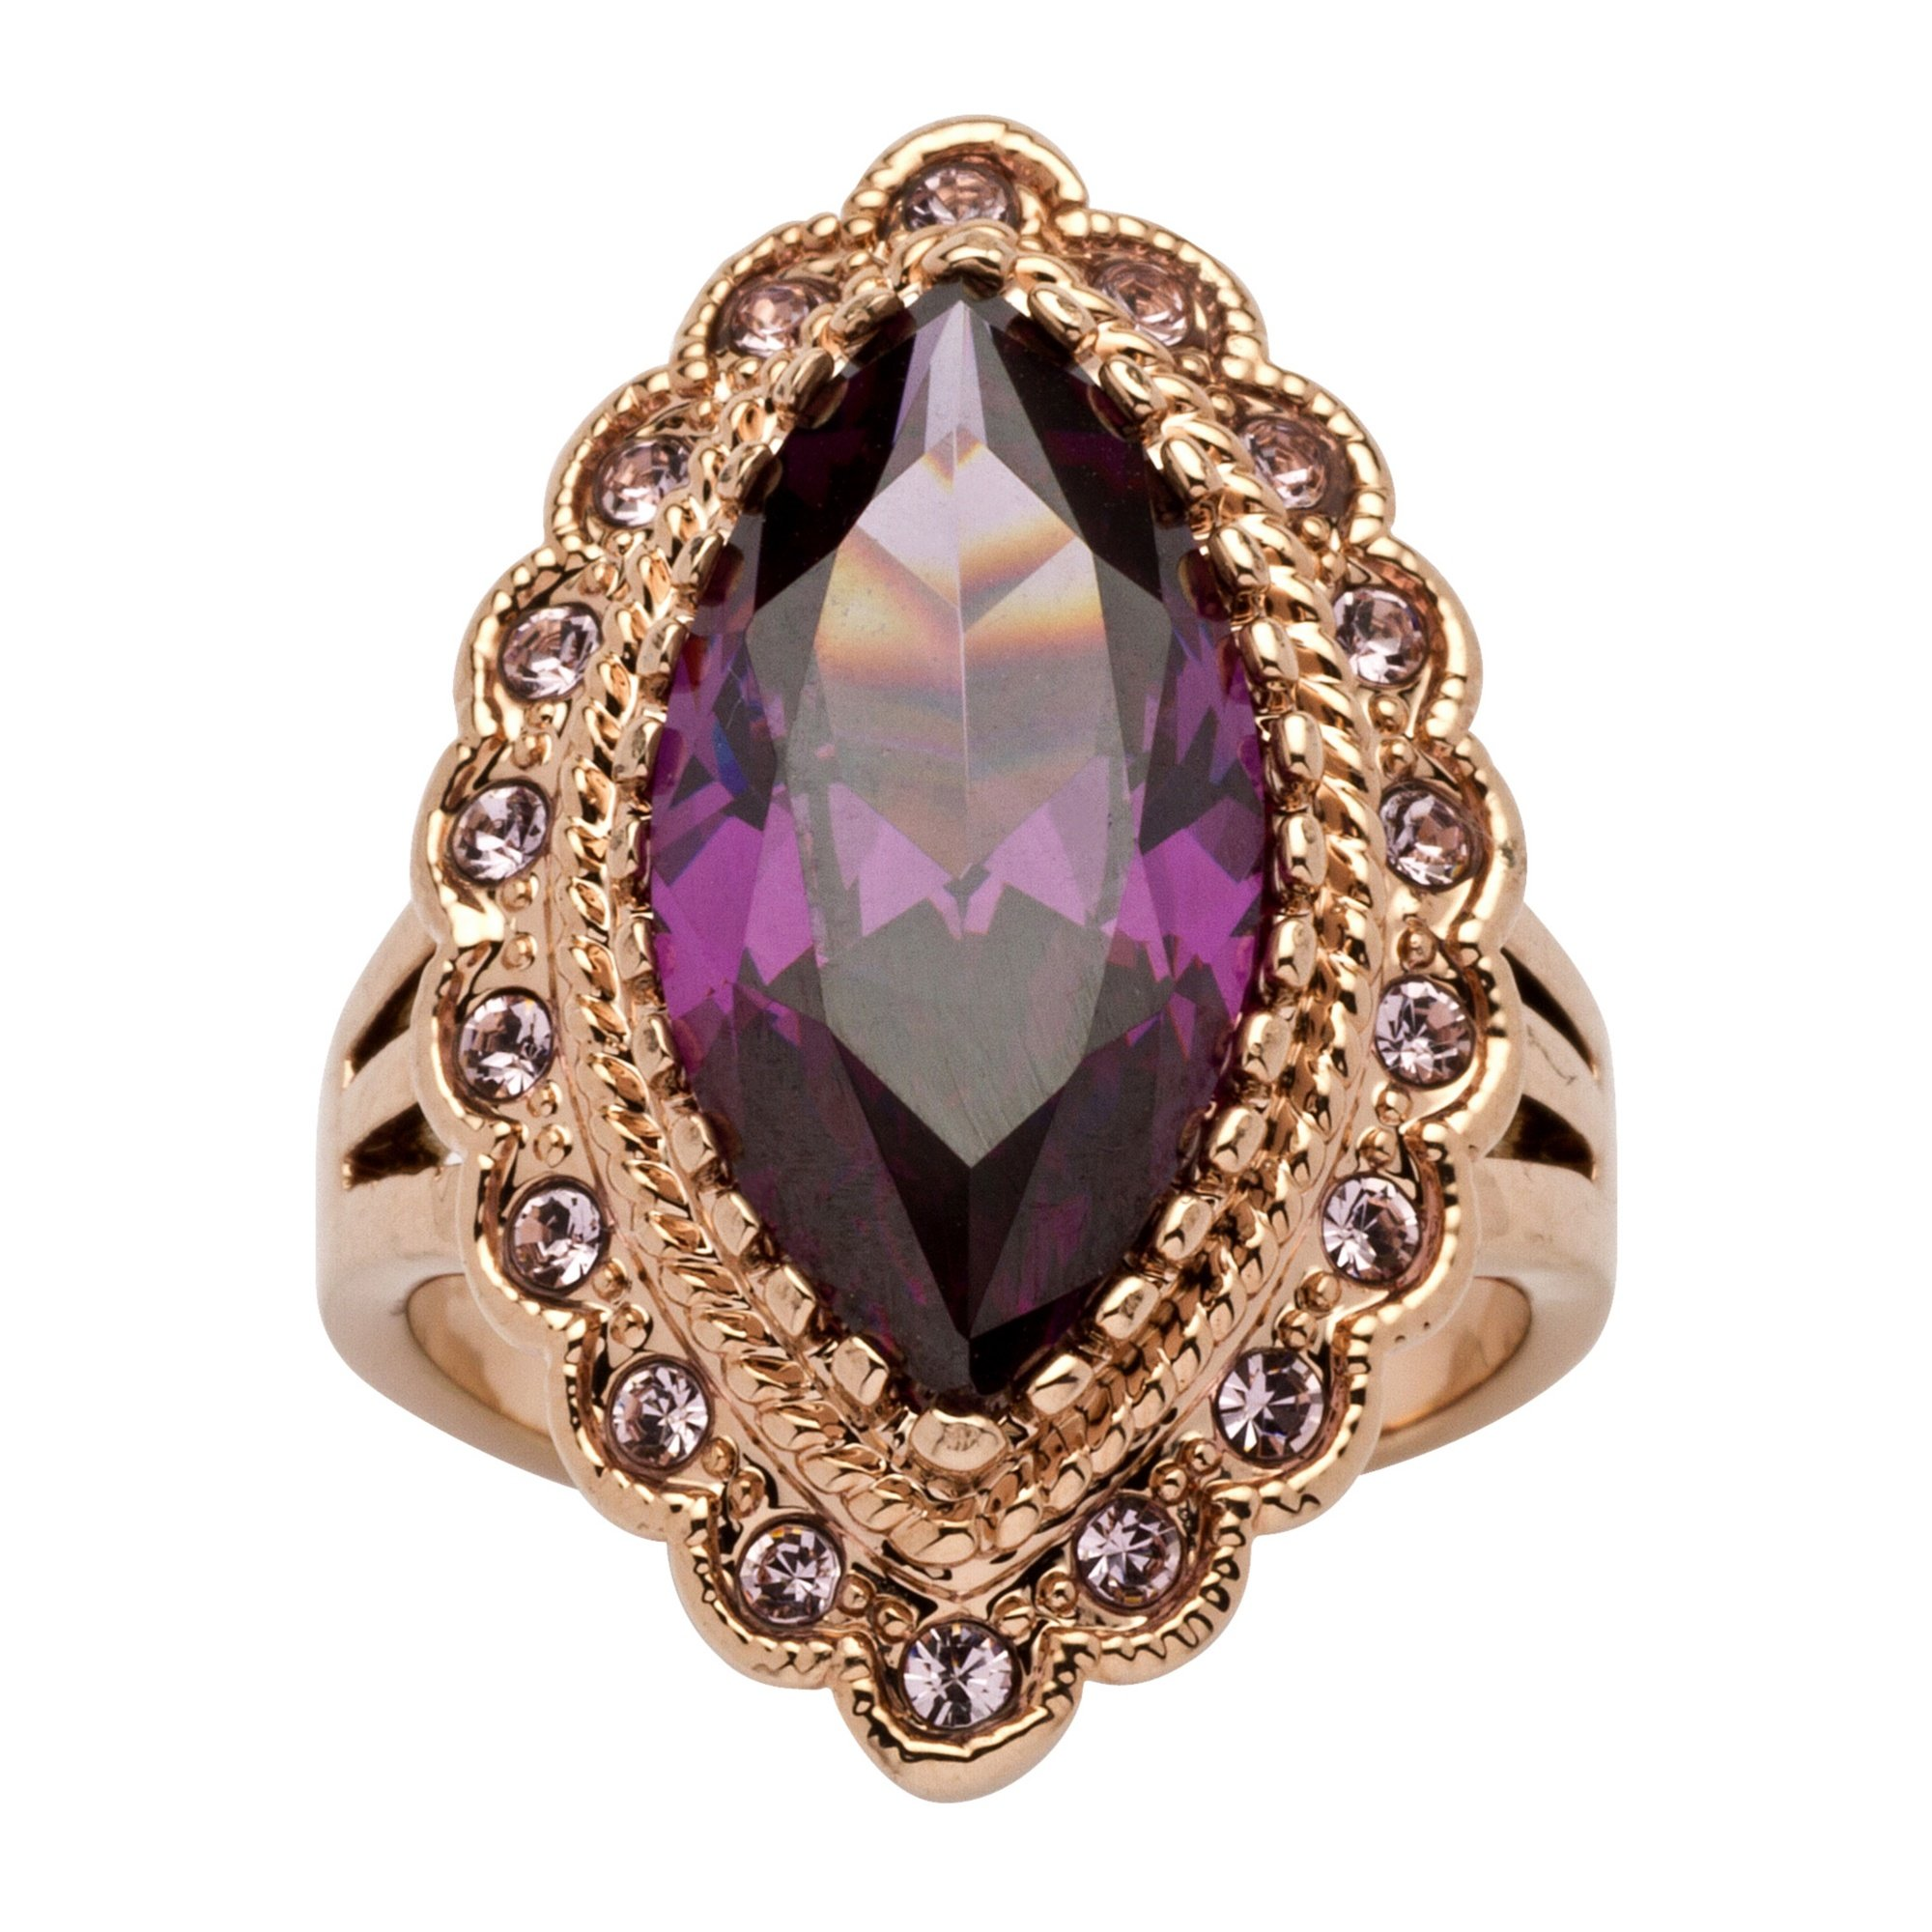 Palm Beach Jewelry Marquise-Cut Amethyst Cubic Zirconia Rose Gold Ion-Plated Cocktail Ring Size 8